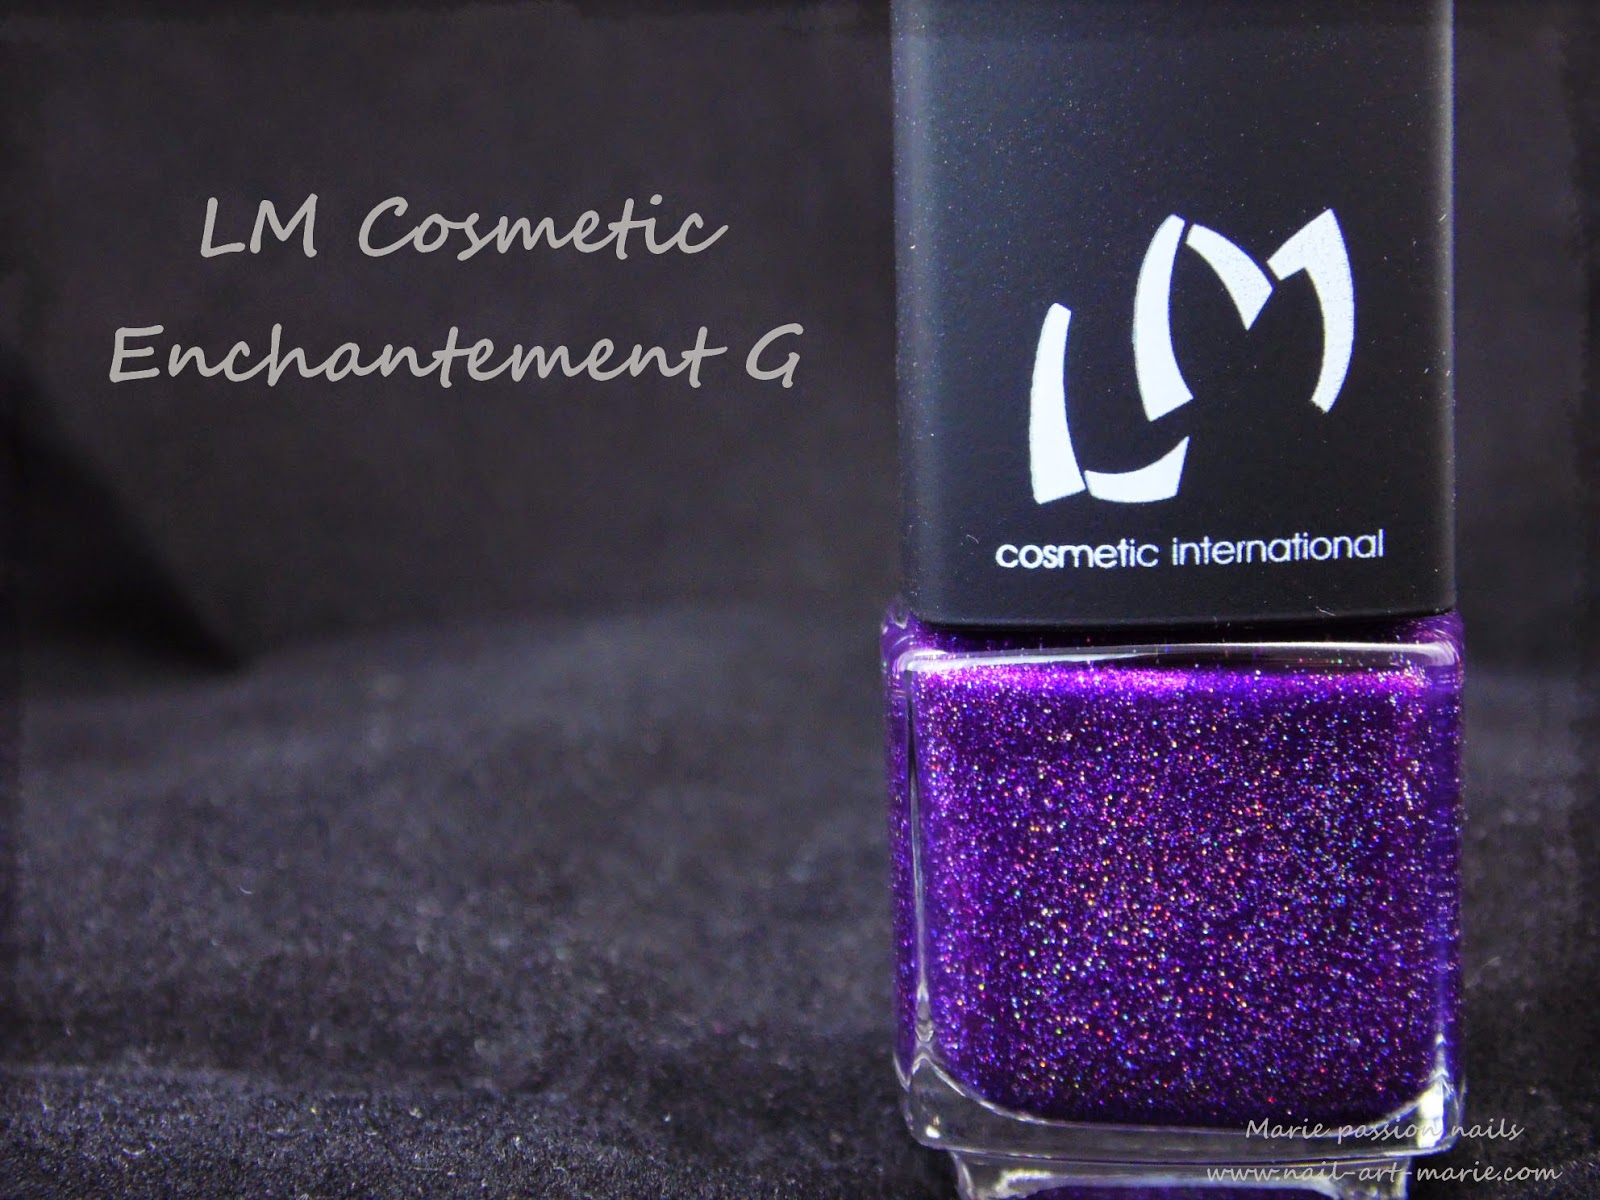 LM Cosmetic Enchantement (G)1